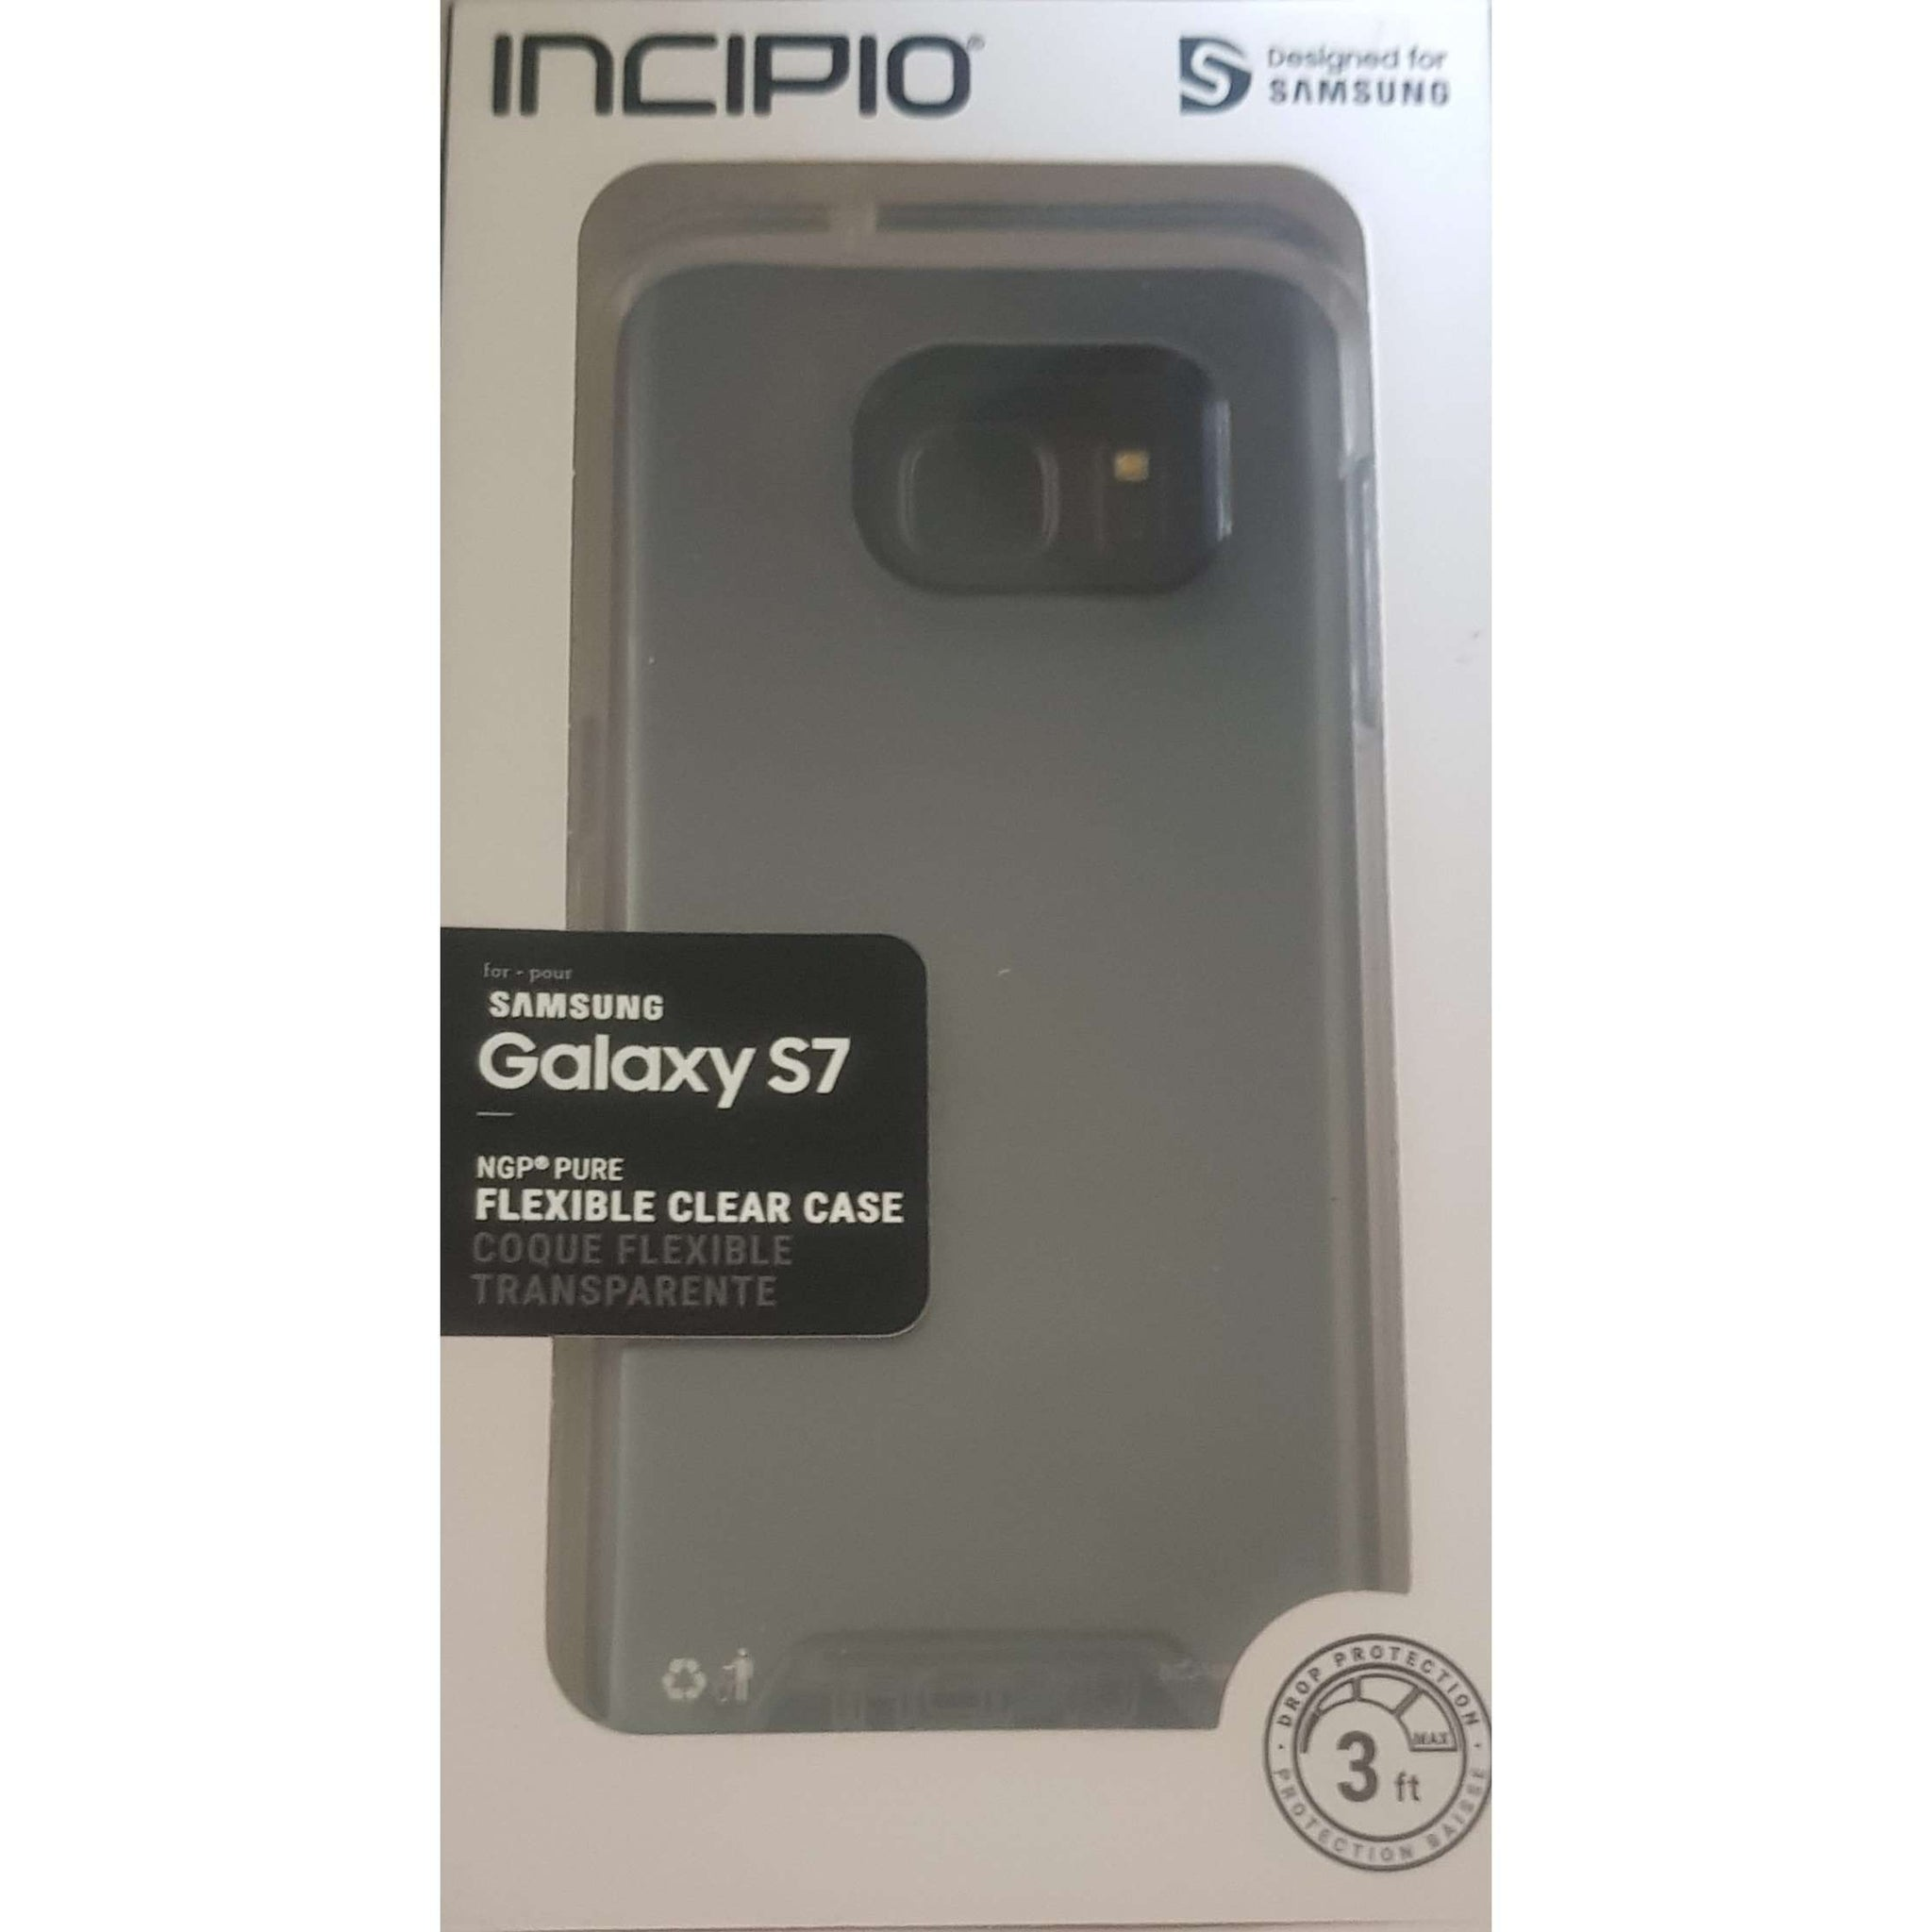 Incipio Samsung Galaxy S7 Flexible Clear Phone Case